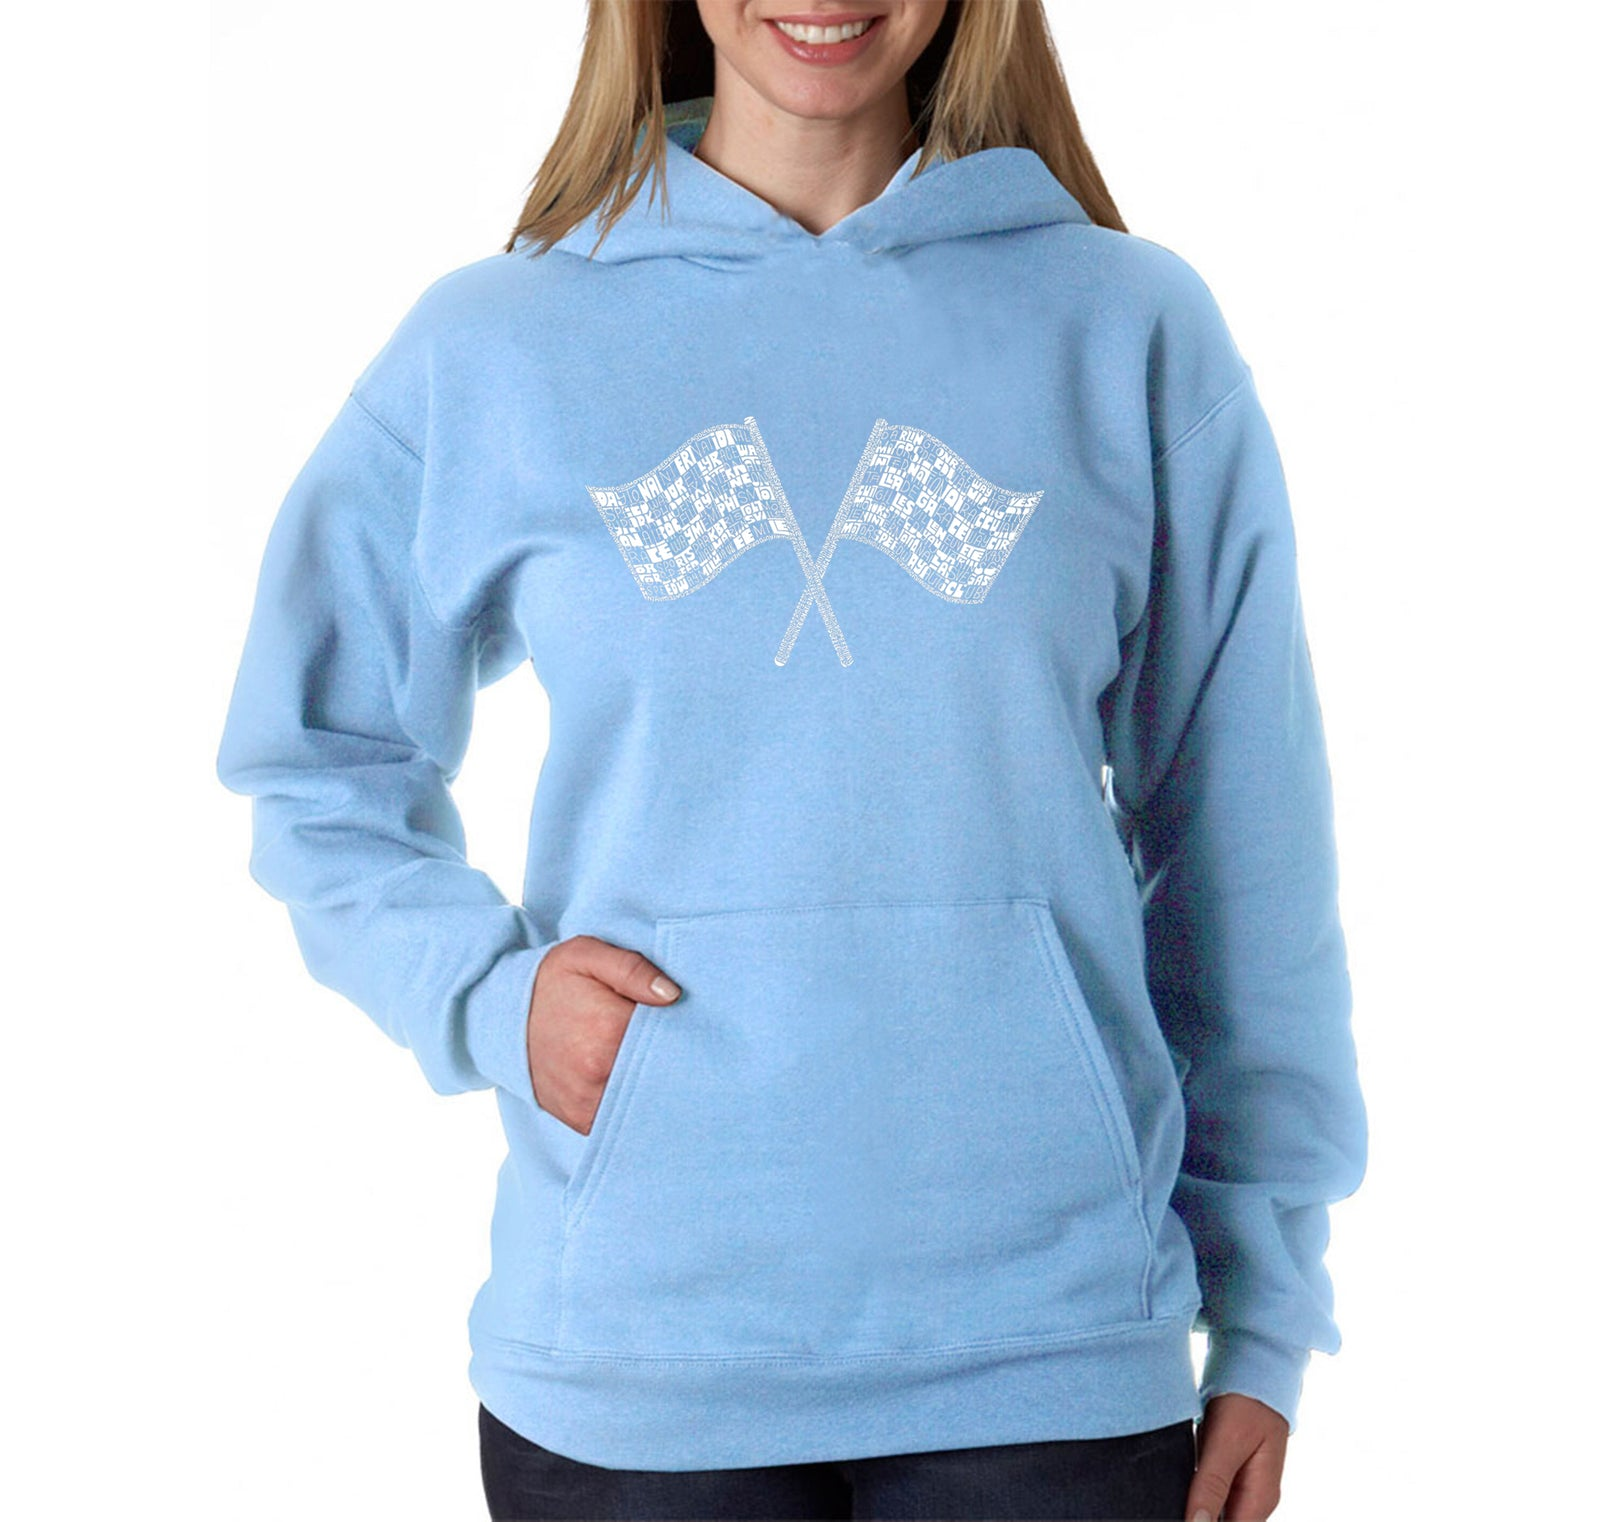 Women's Hooded Sweatshirt -NASCAR NATIONAL SERIES RACE TRACKS